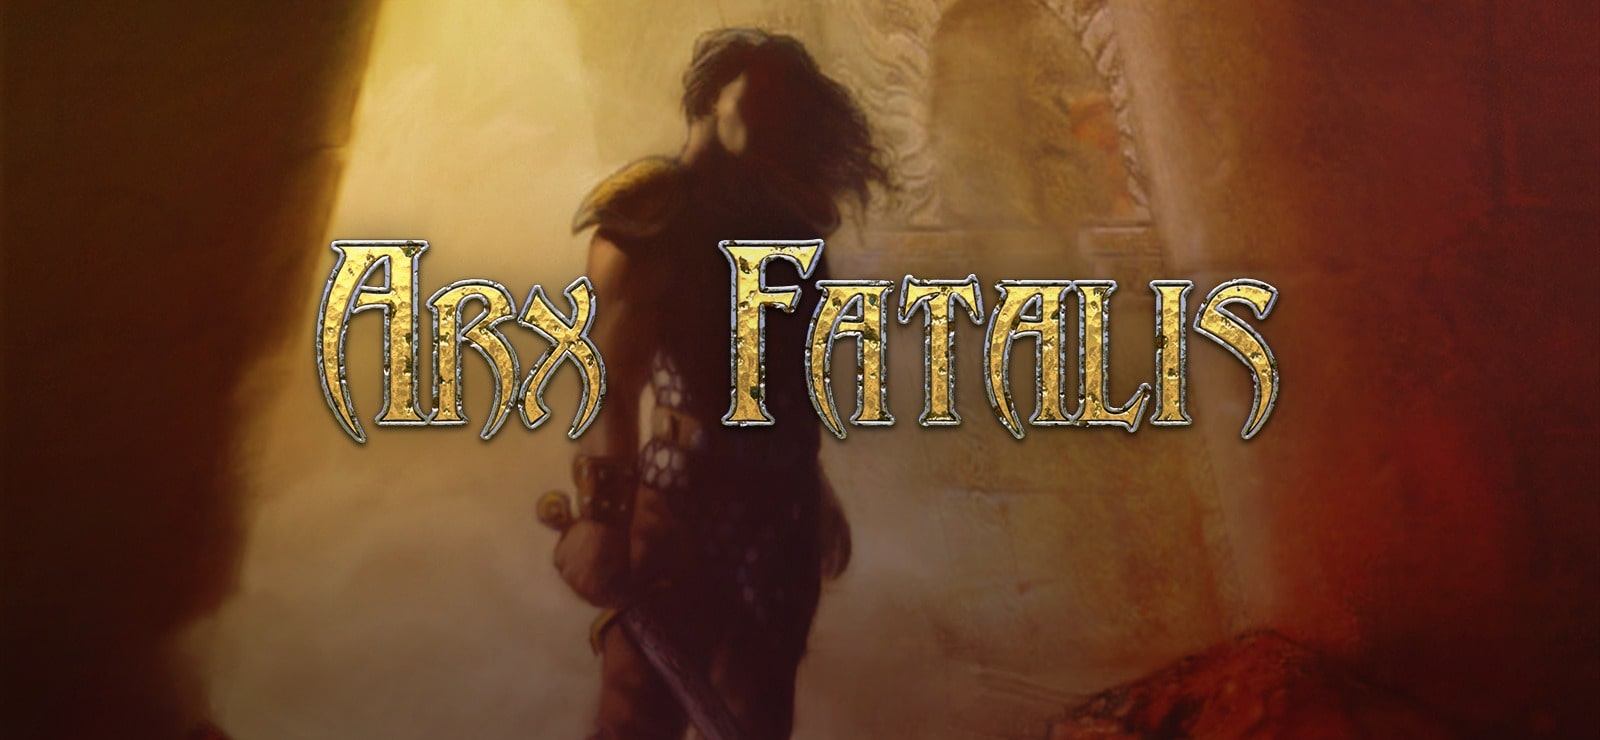 Arx Fatalis varies-with-device